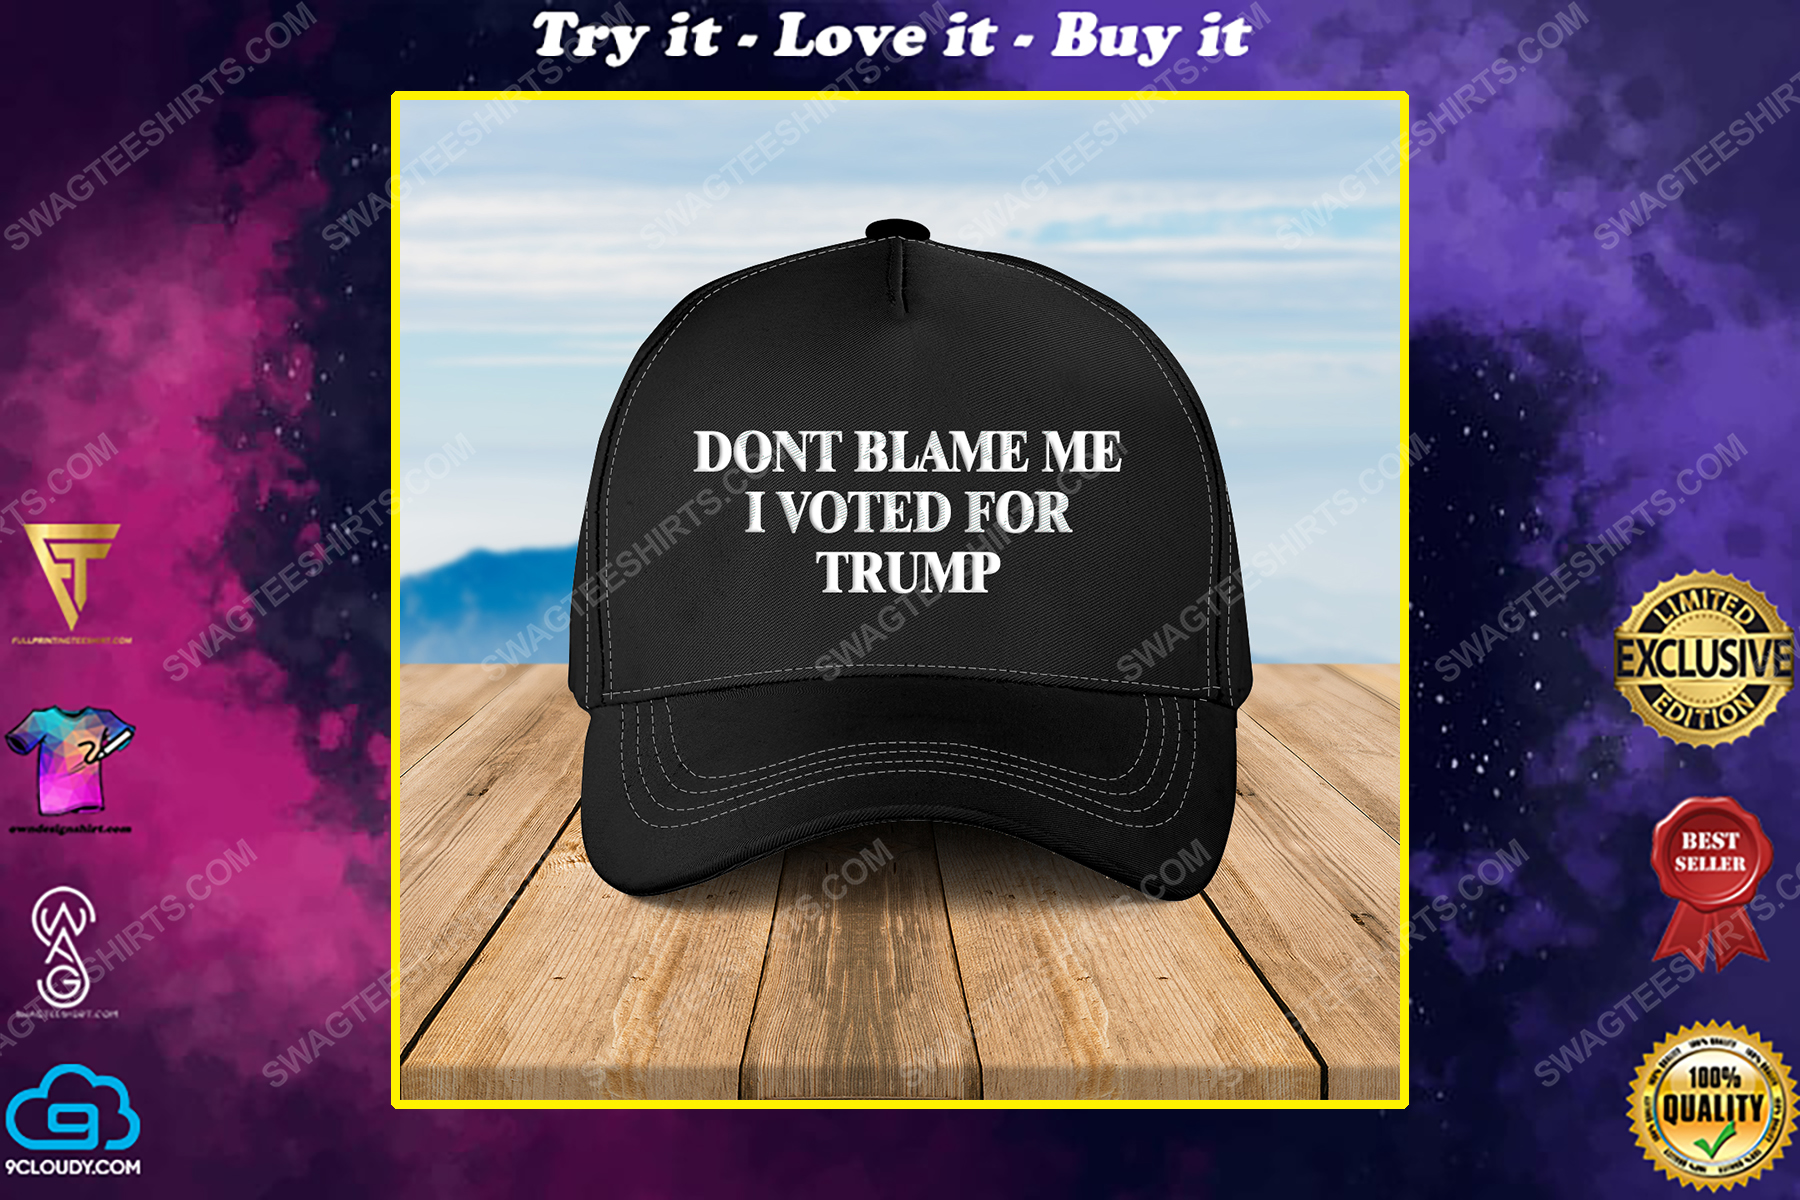 Don't blame me i voted for trump american flag full print classic hat